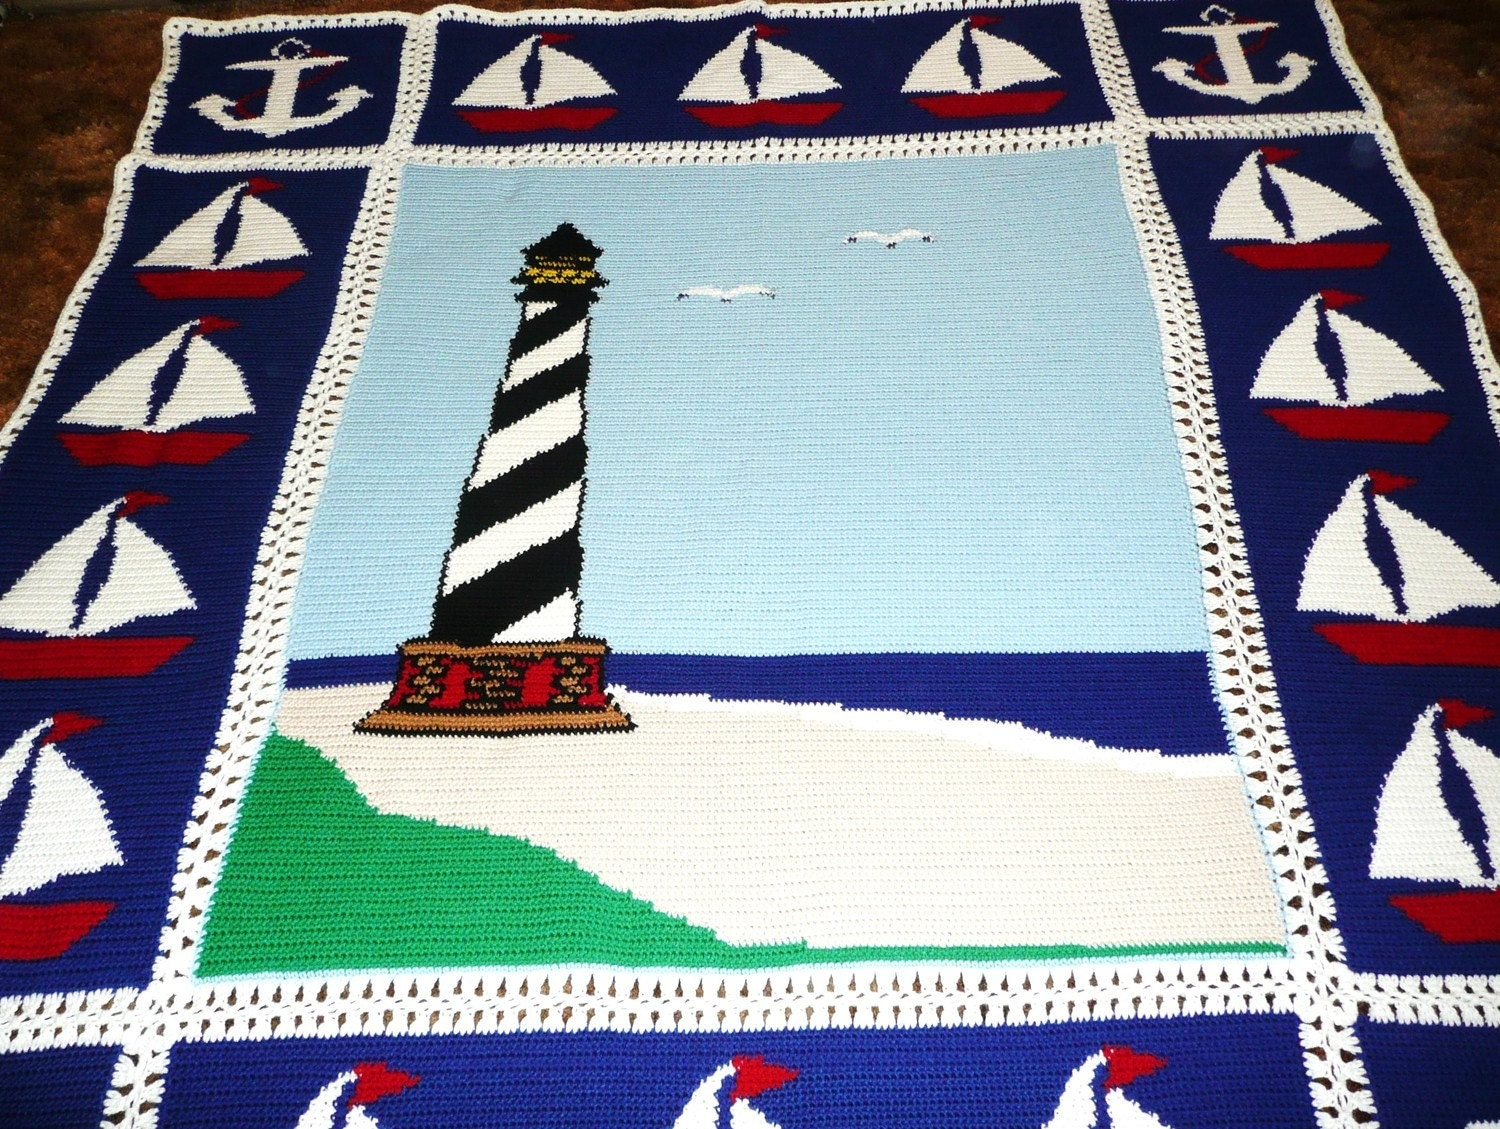 Nautical Lighthouse Sailboats and Anchors by maltesedreamer